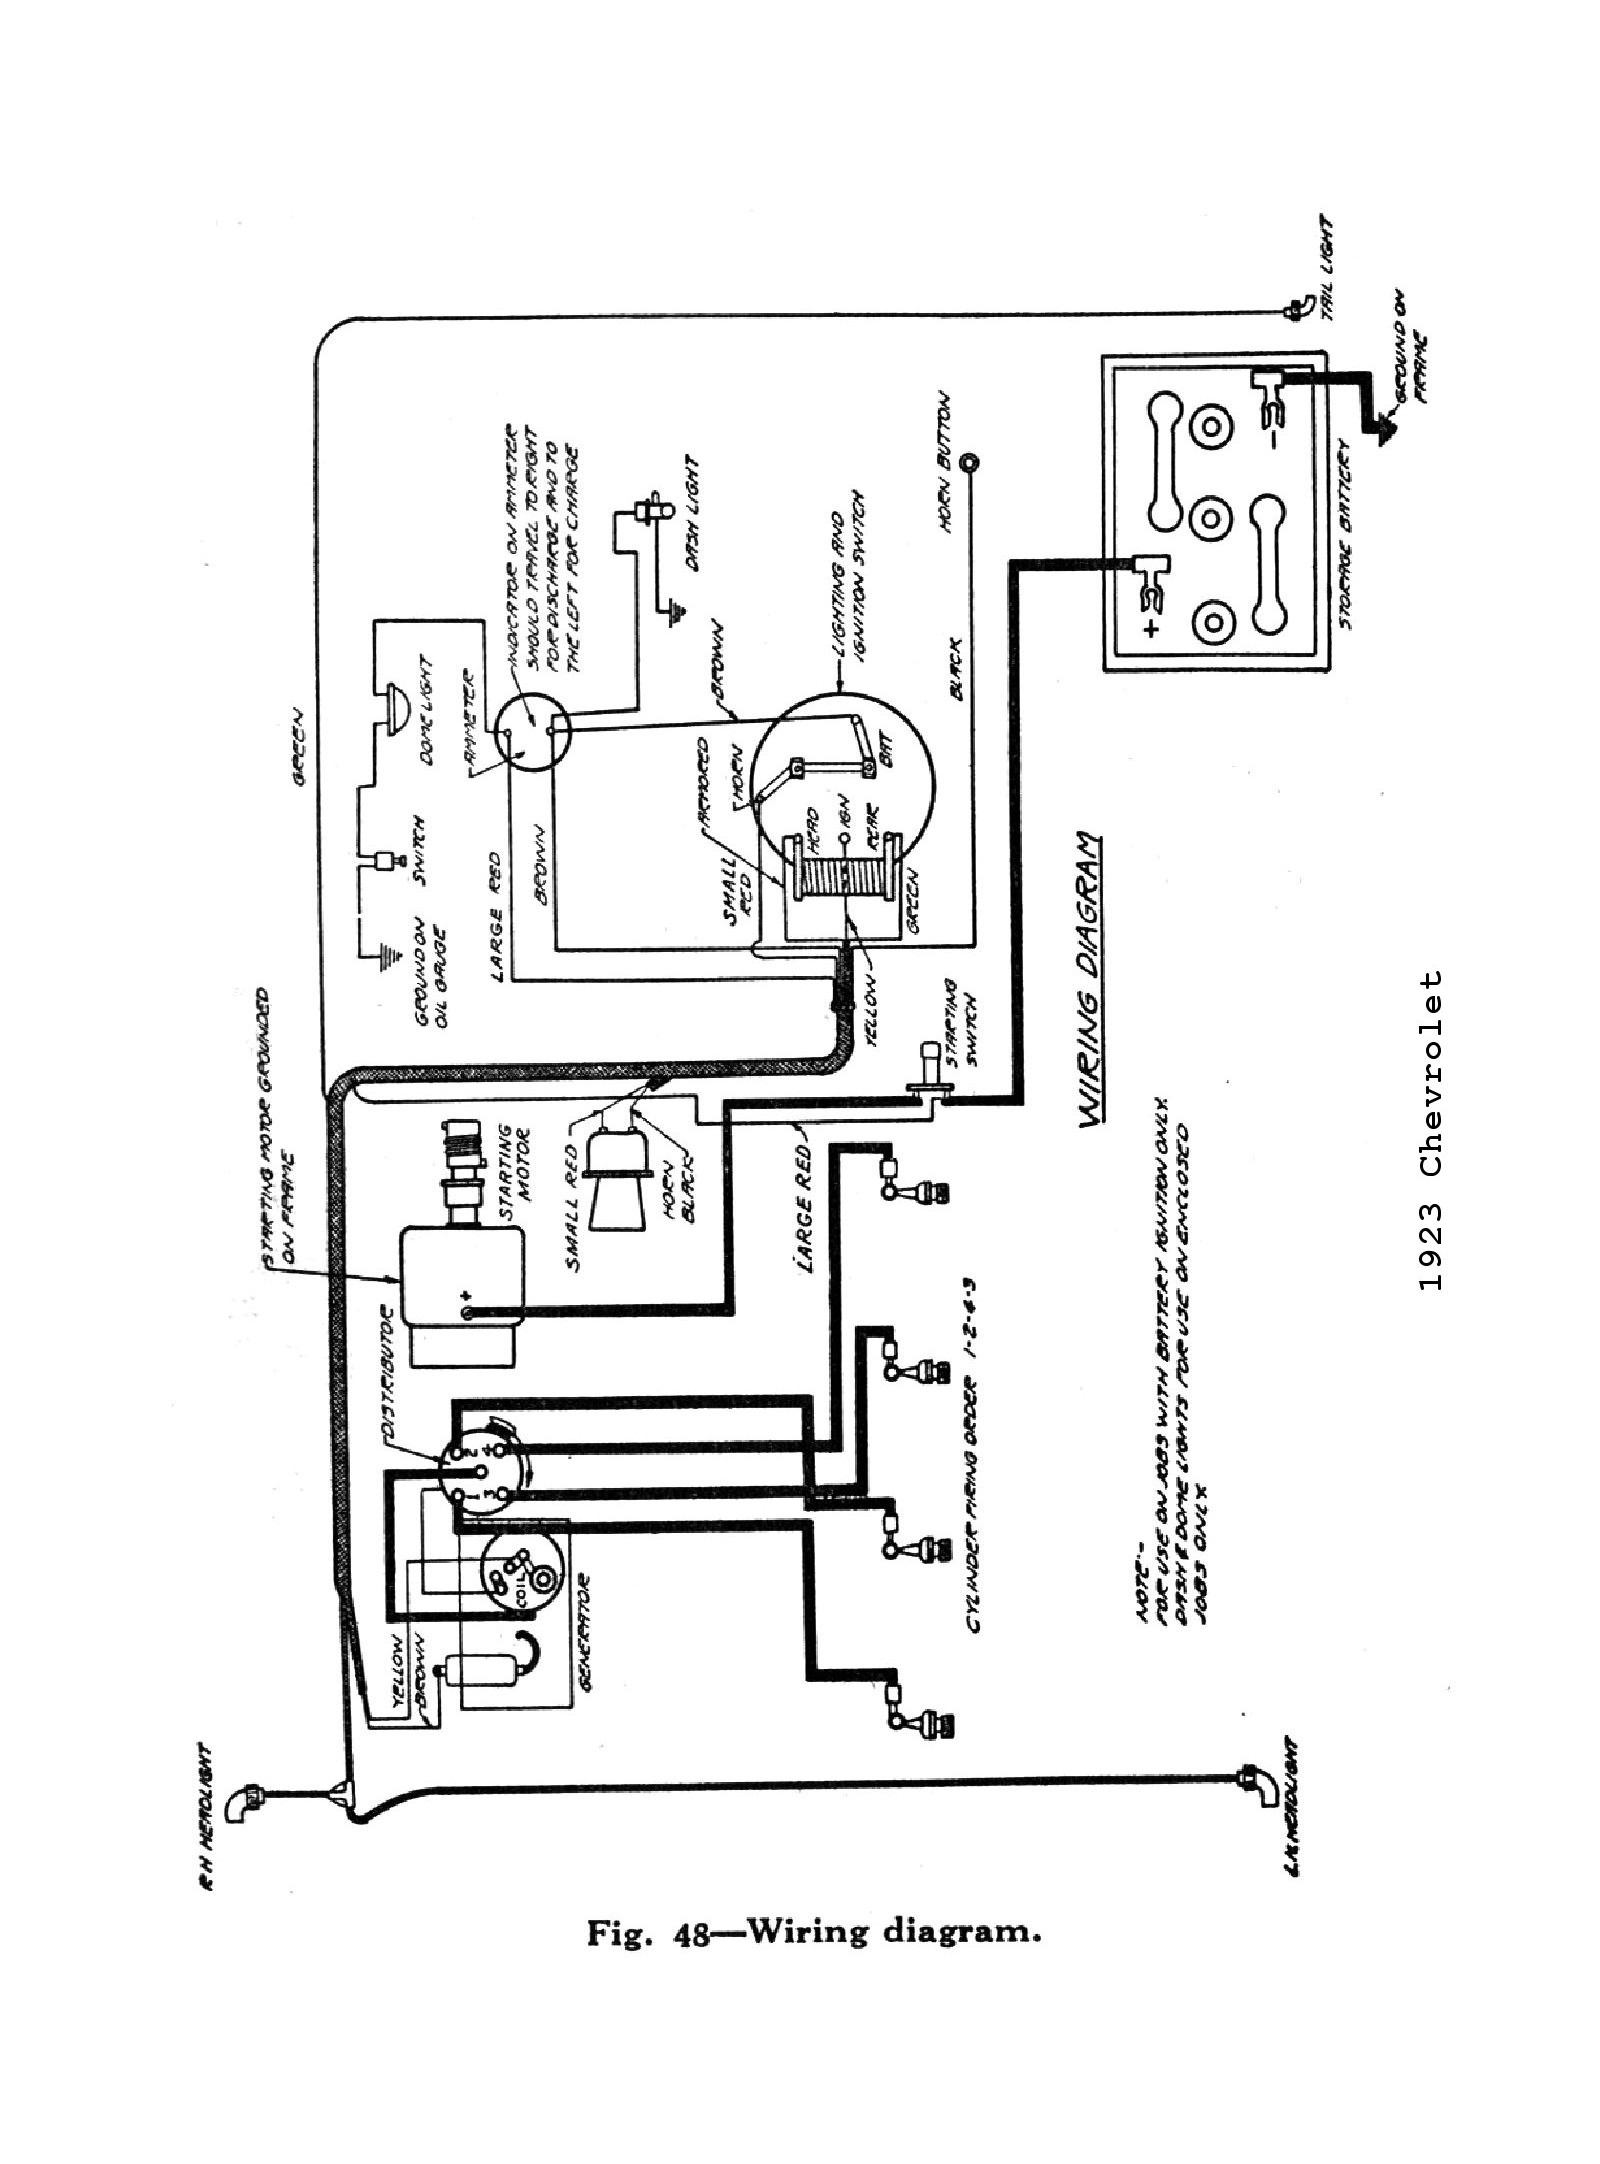 23model chevy wiring diagrams modem wiring diagram at mifinder.co